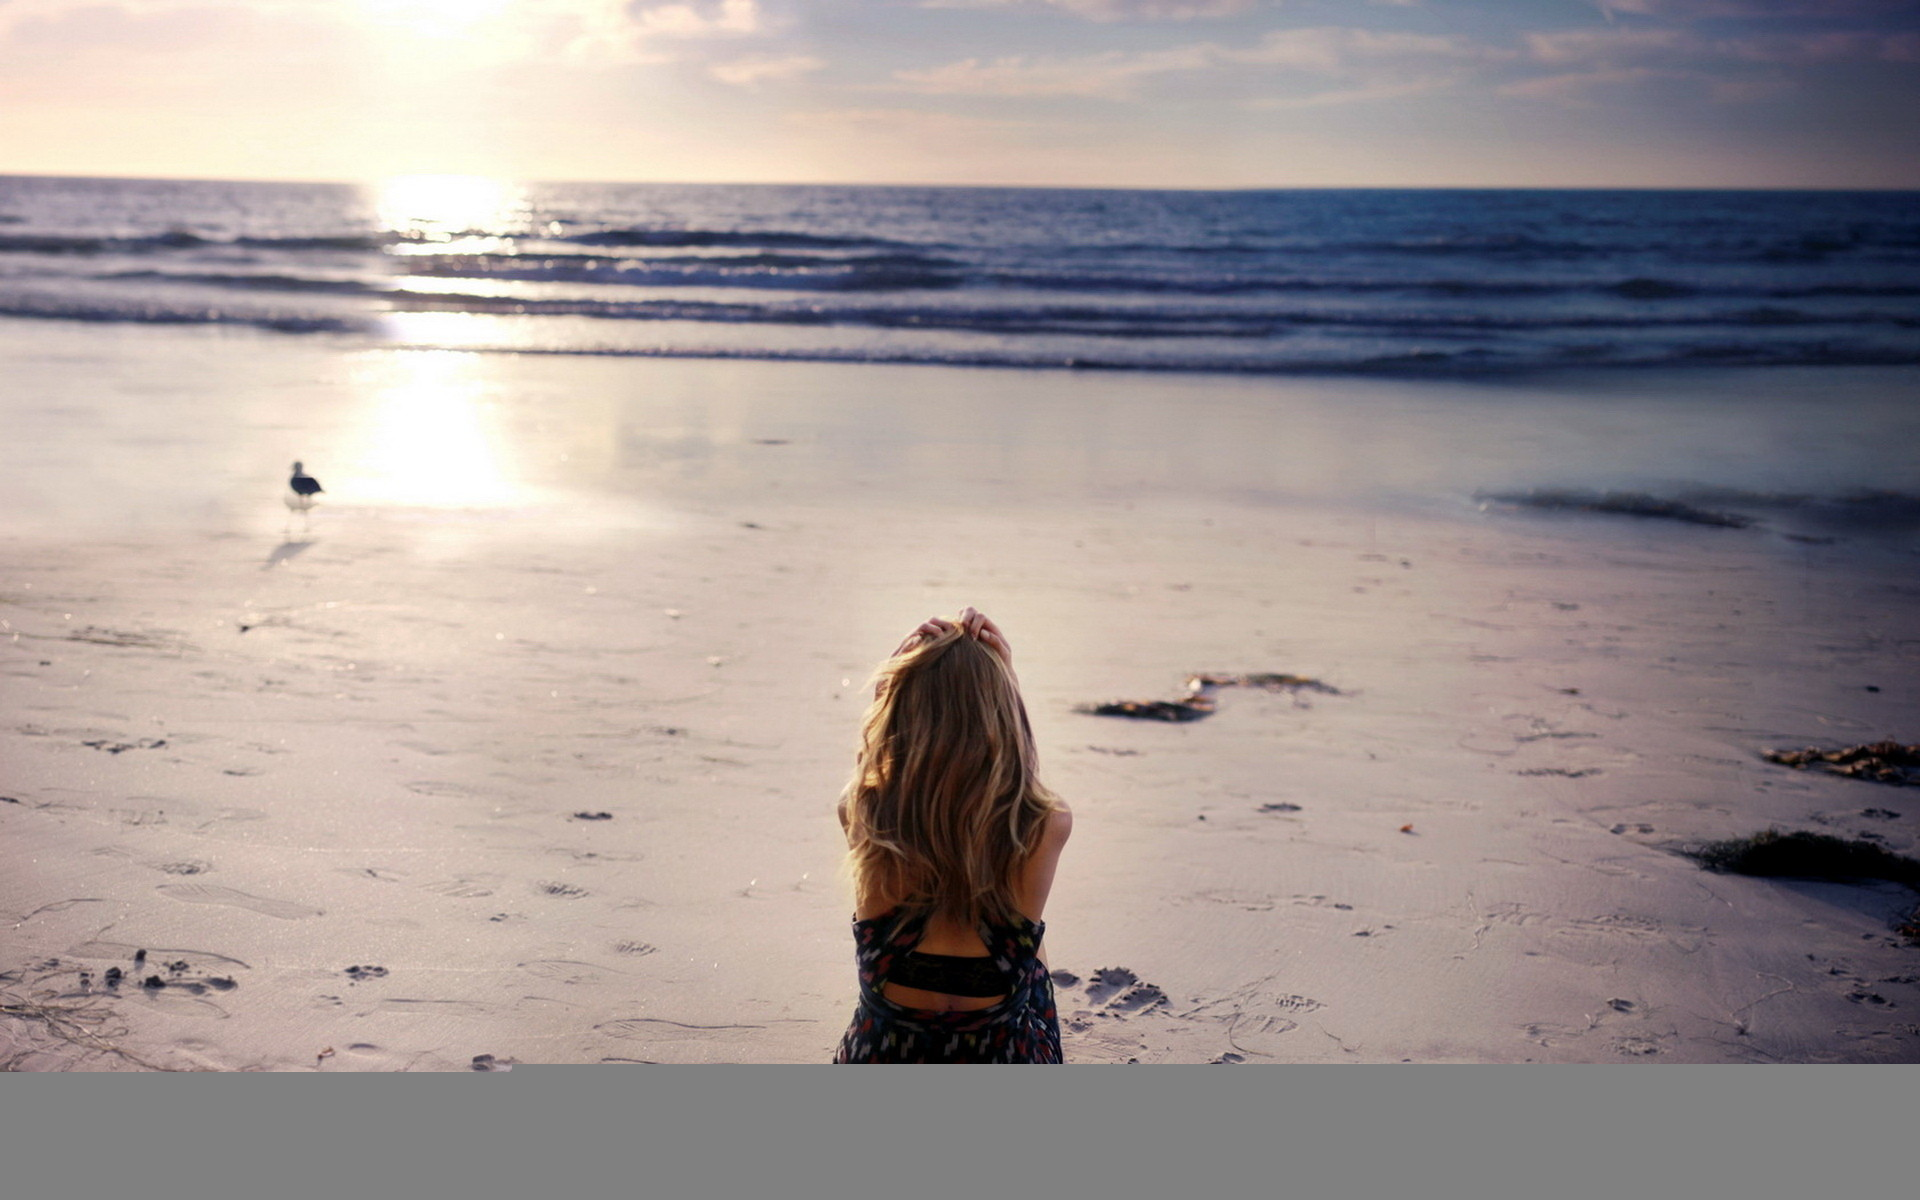 Sad Girl Wallpapers   Data Src Sad Wallpapers For Ios - Alone Girl In The Beach - HD Wallpaper